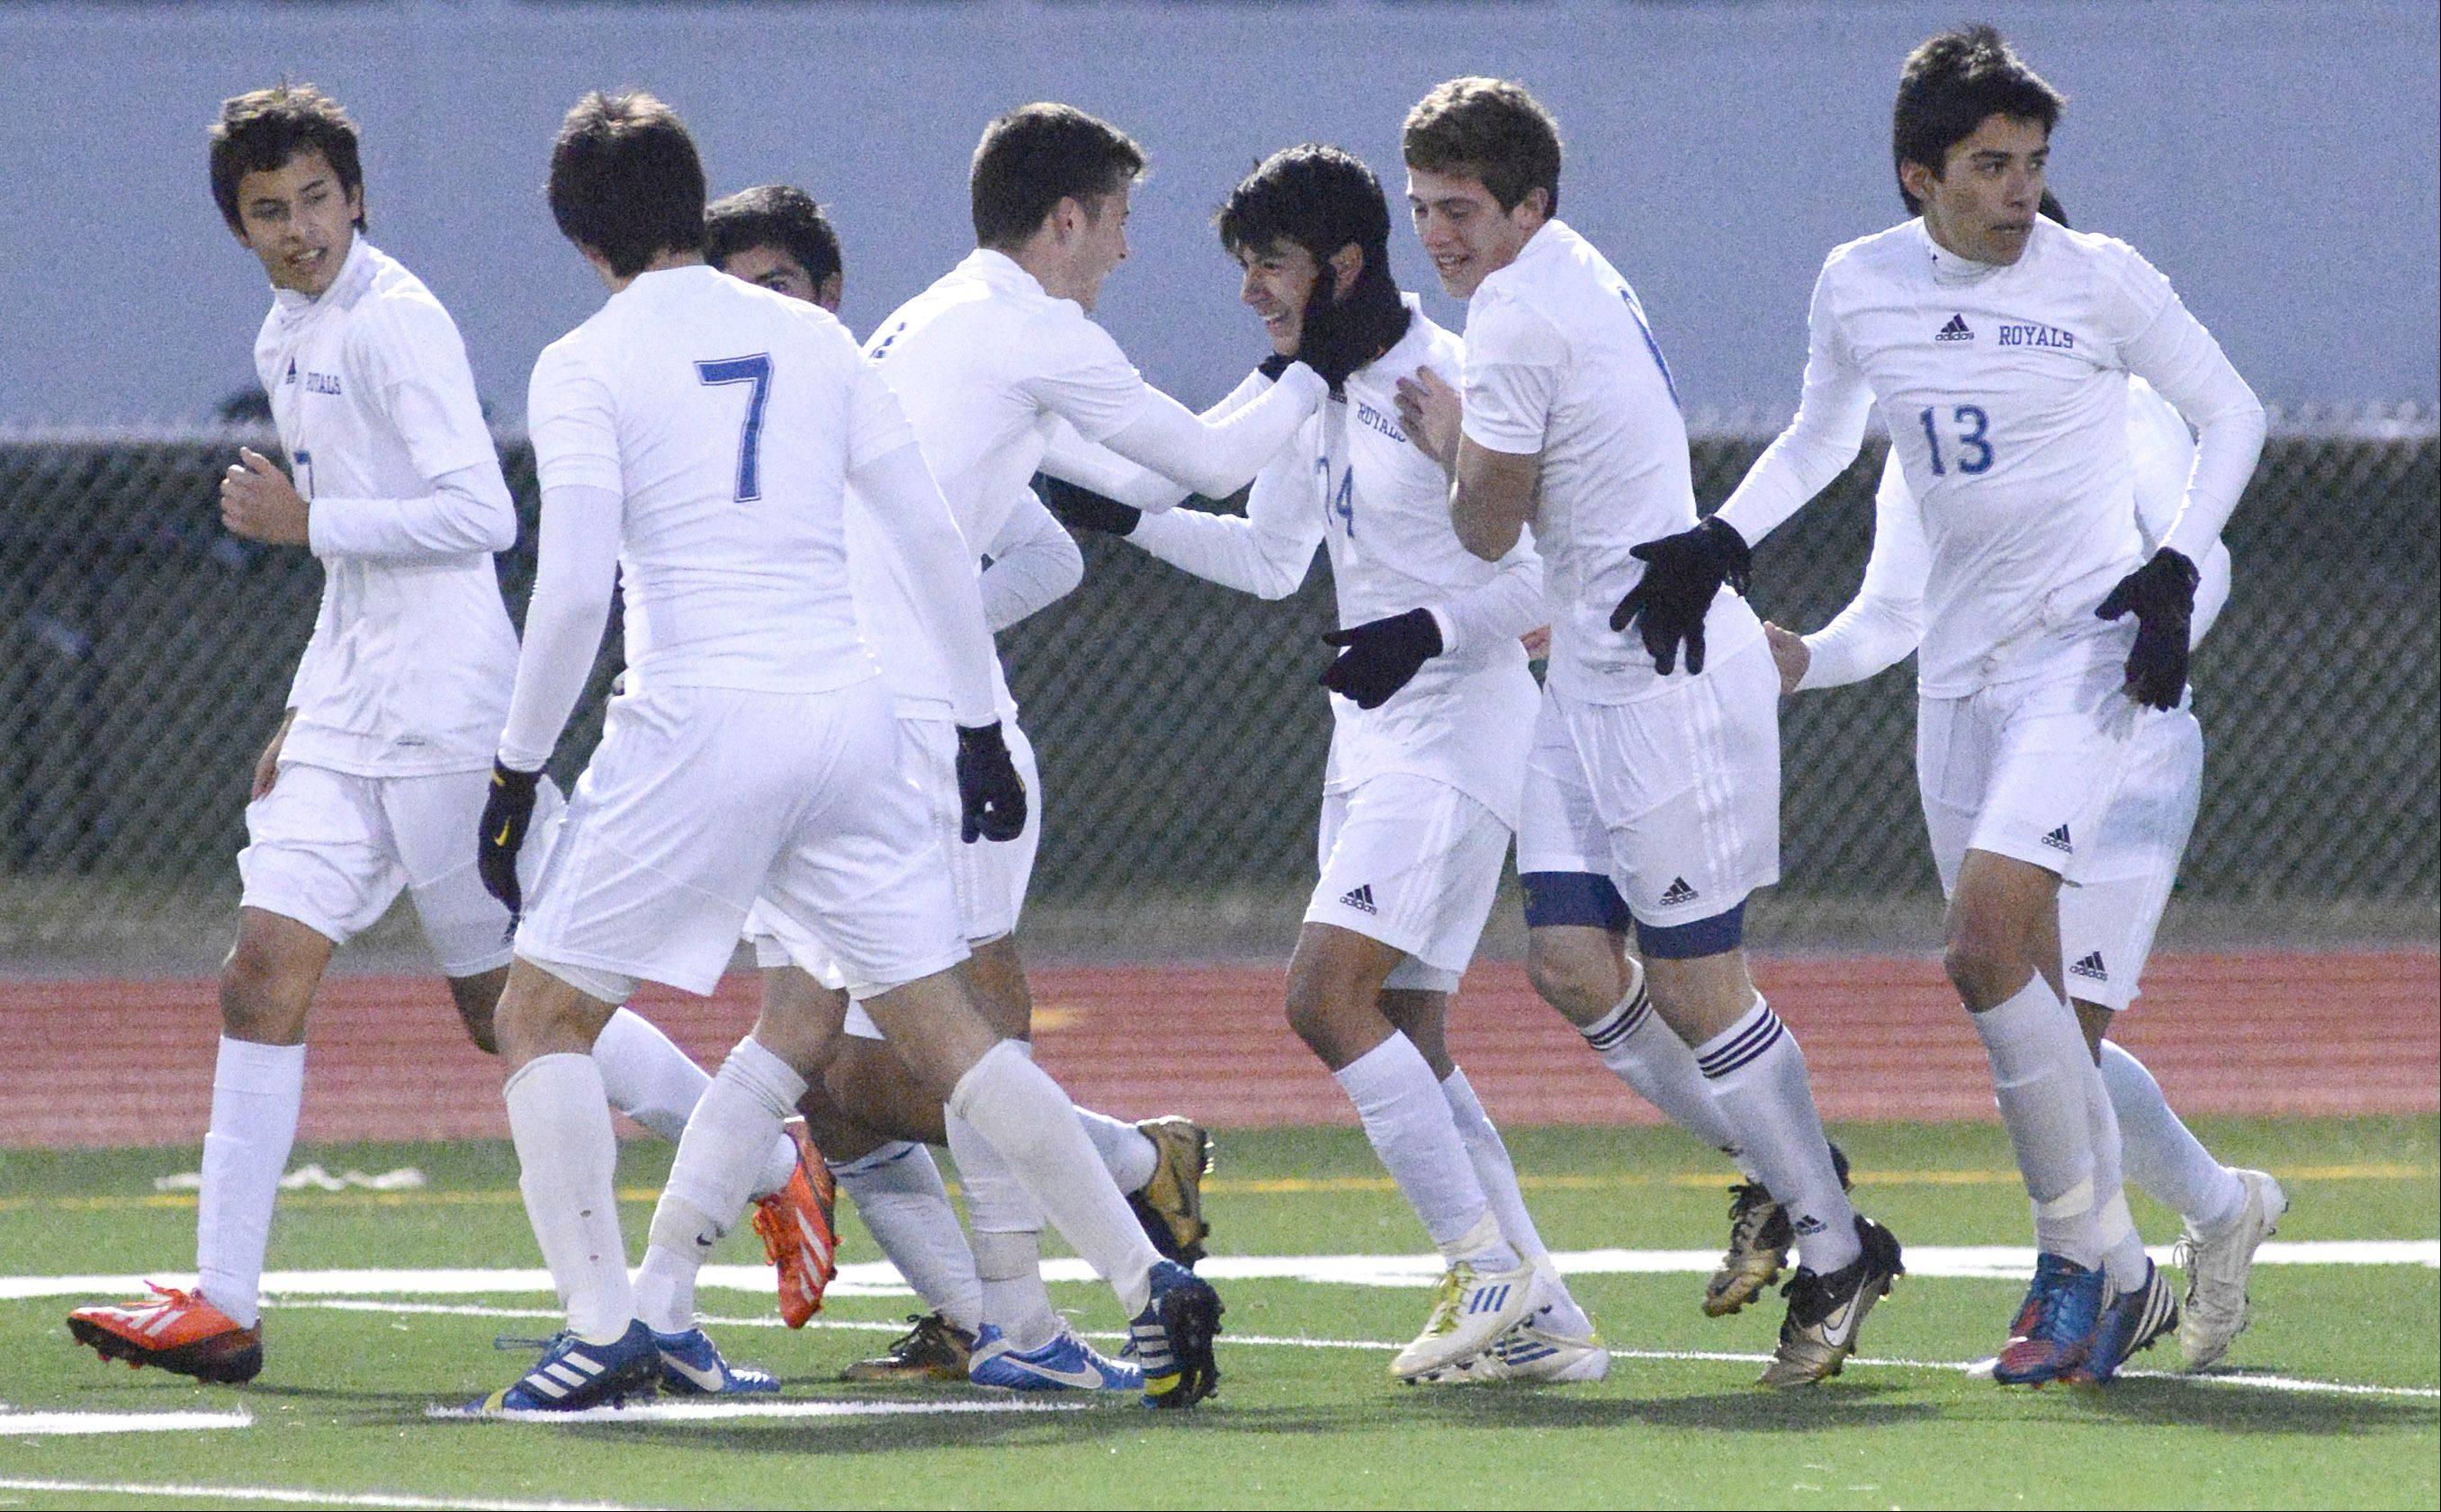 Larkin's Alex Cruz,(center, facing left) is greeted by teammate Griffen Perez after scoring a goal for the Royals in the second half of the Class 3A sectional championship at Huntley High School on Saturday, November 2.